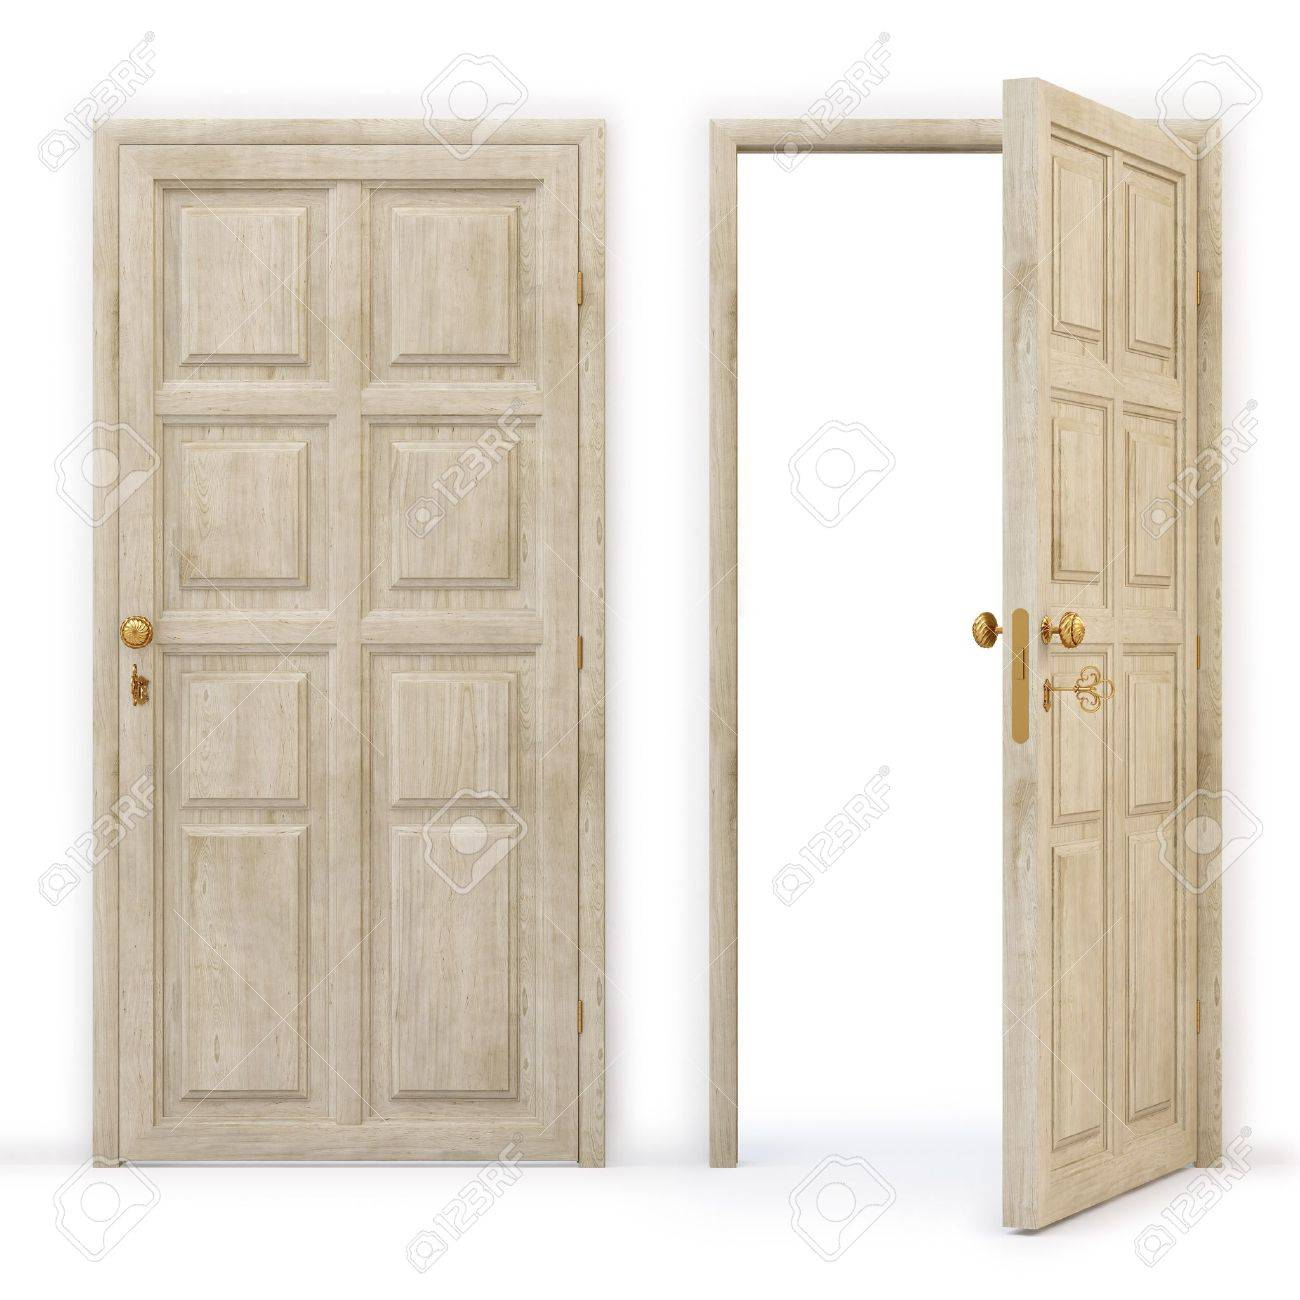 open and closed wooden doors. Stock Photo - 8657103